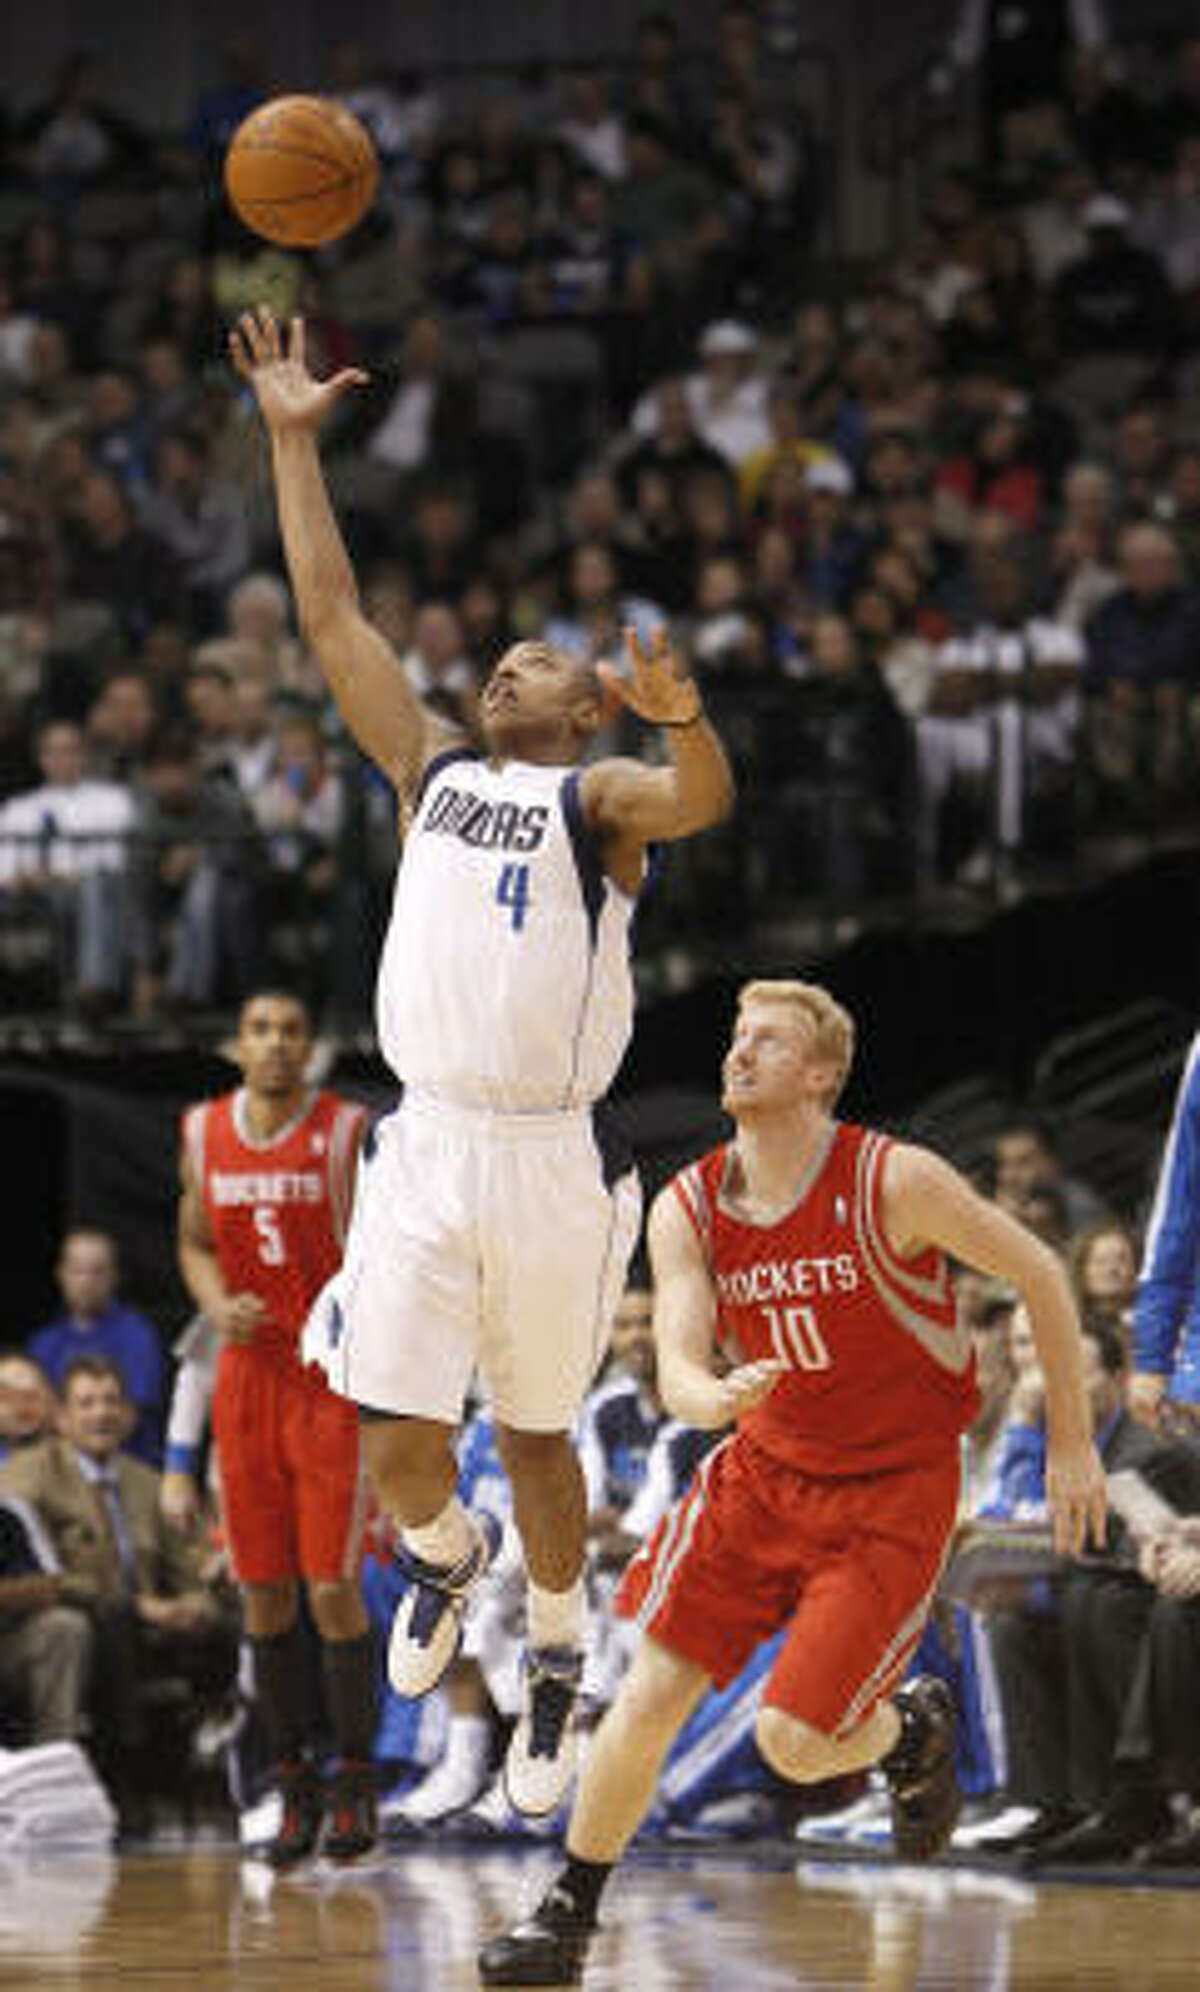 Mavericks small forward Caron Butler (4) steals the ball in front of Rockets small forward Chase Budinger (10).